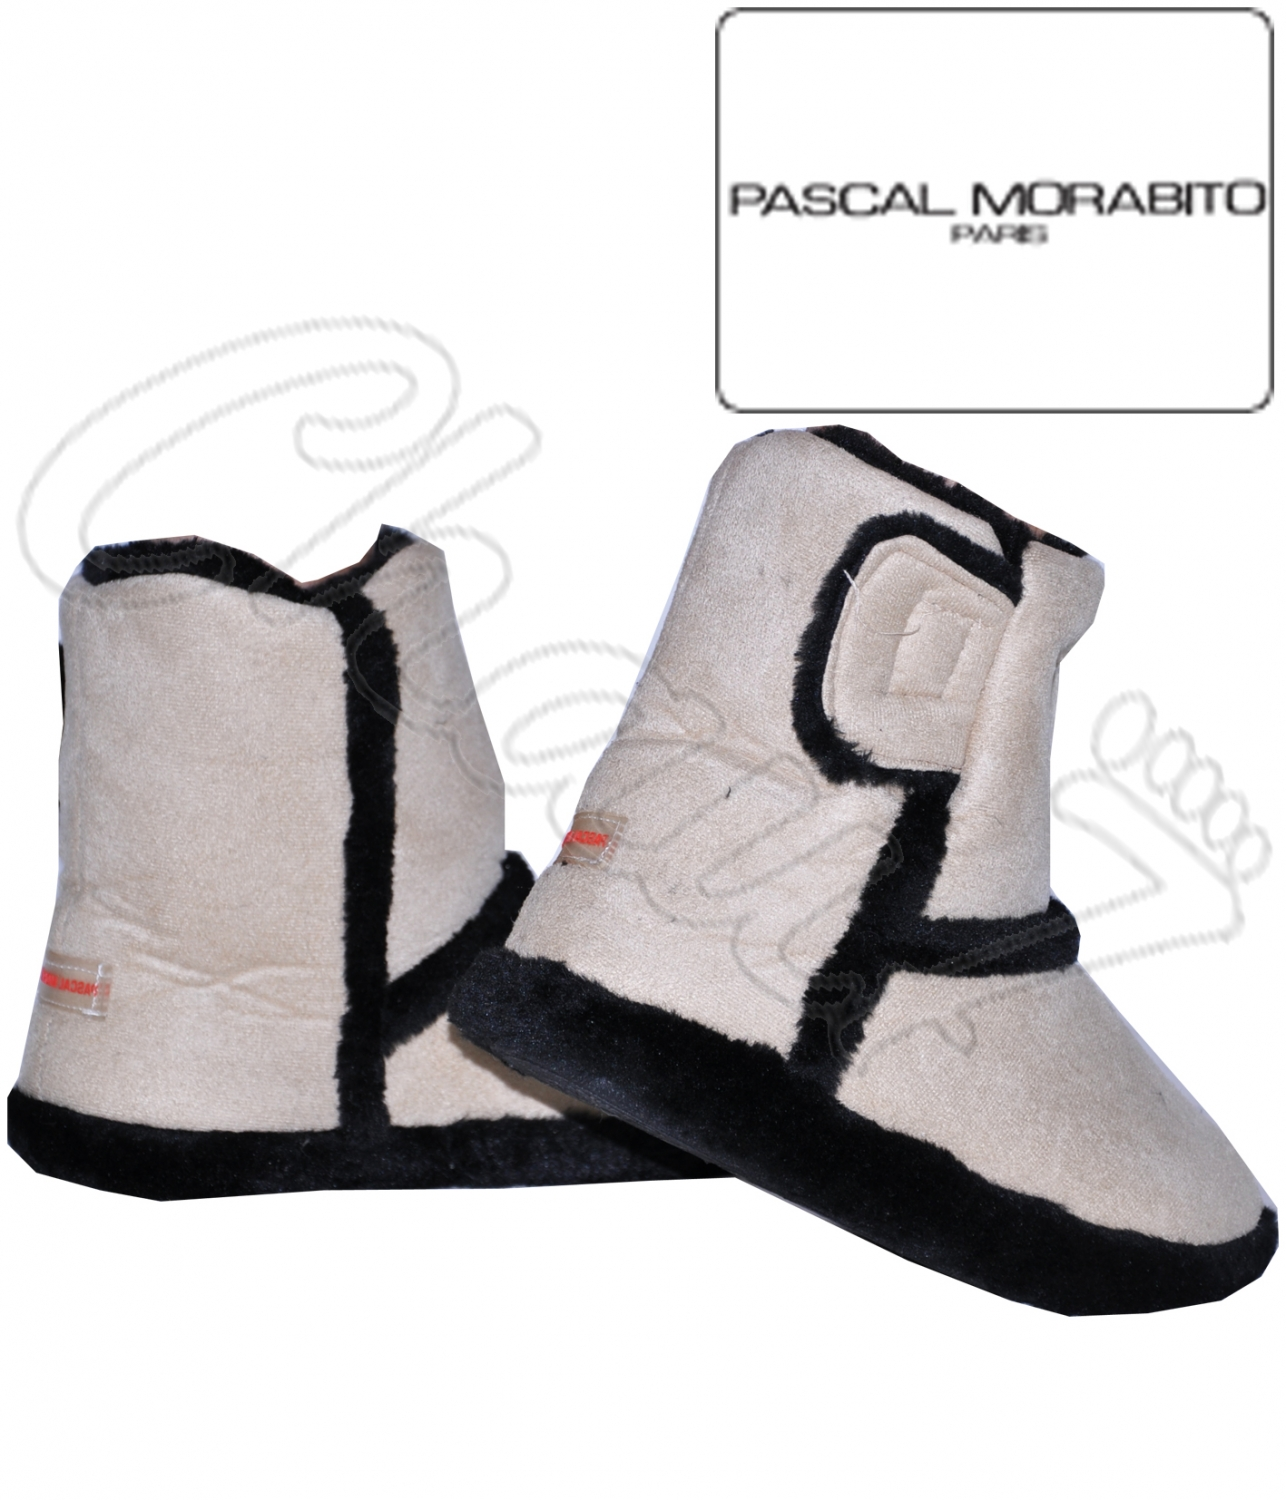 chaussons chaud dain style uggs. Black Bedroom Furniture Sets. Home Design Ideas